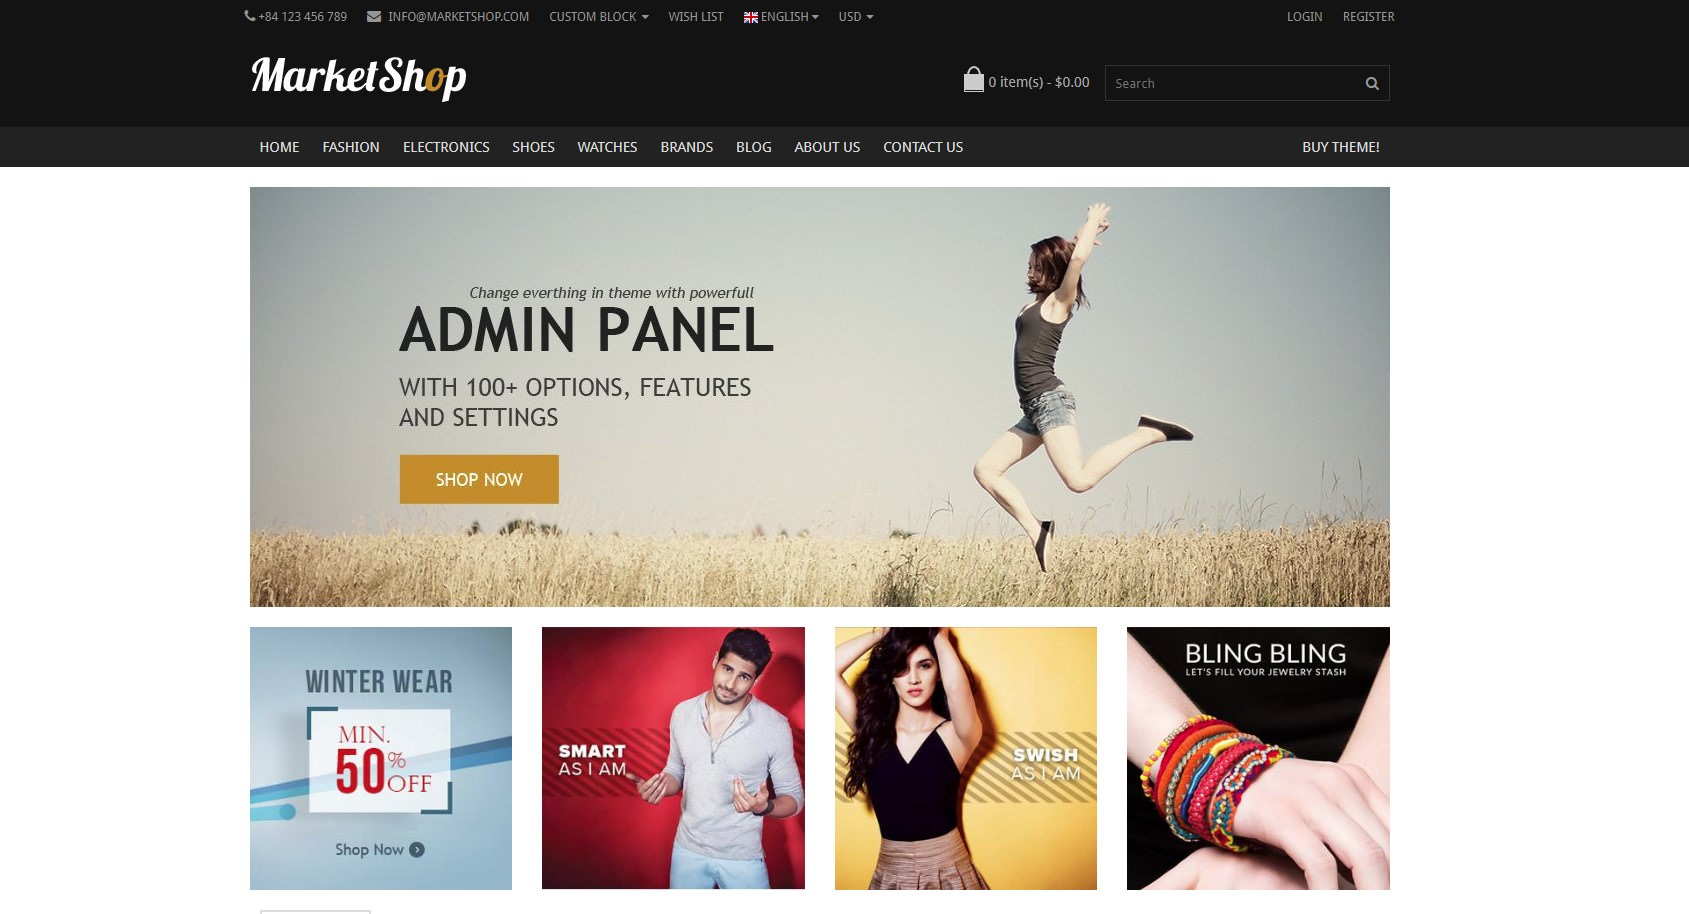 Marketshop theme